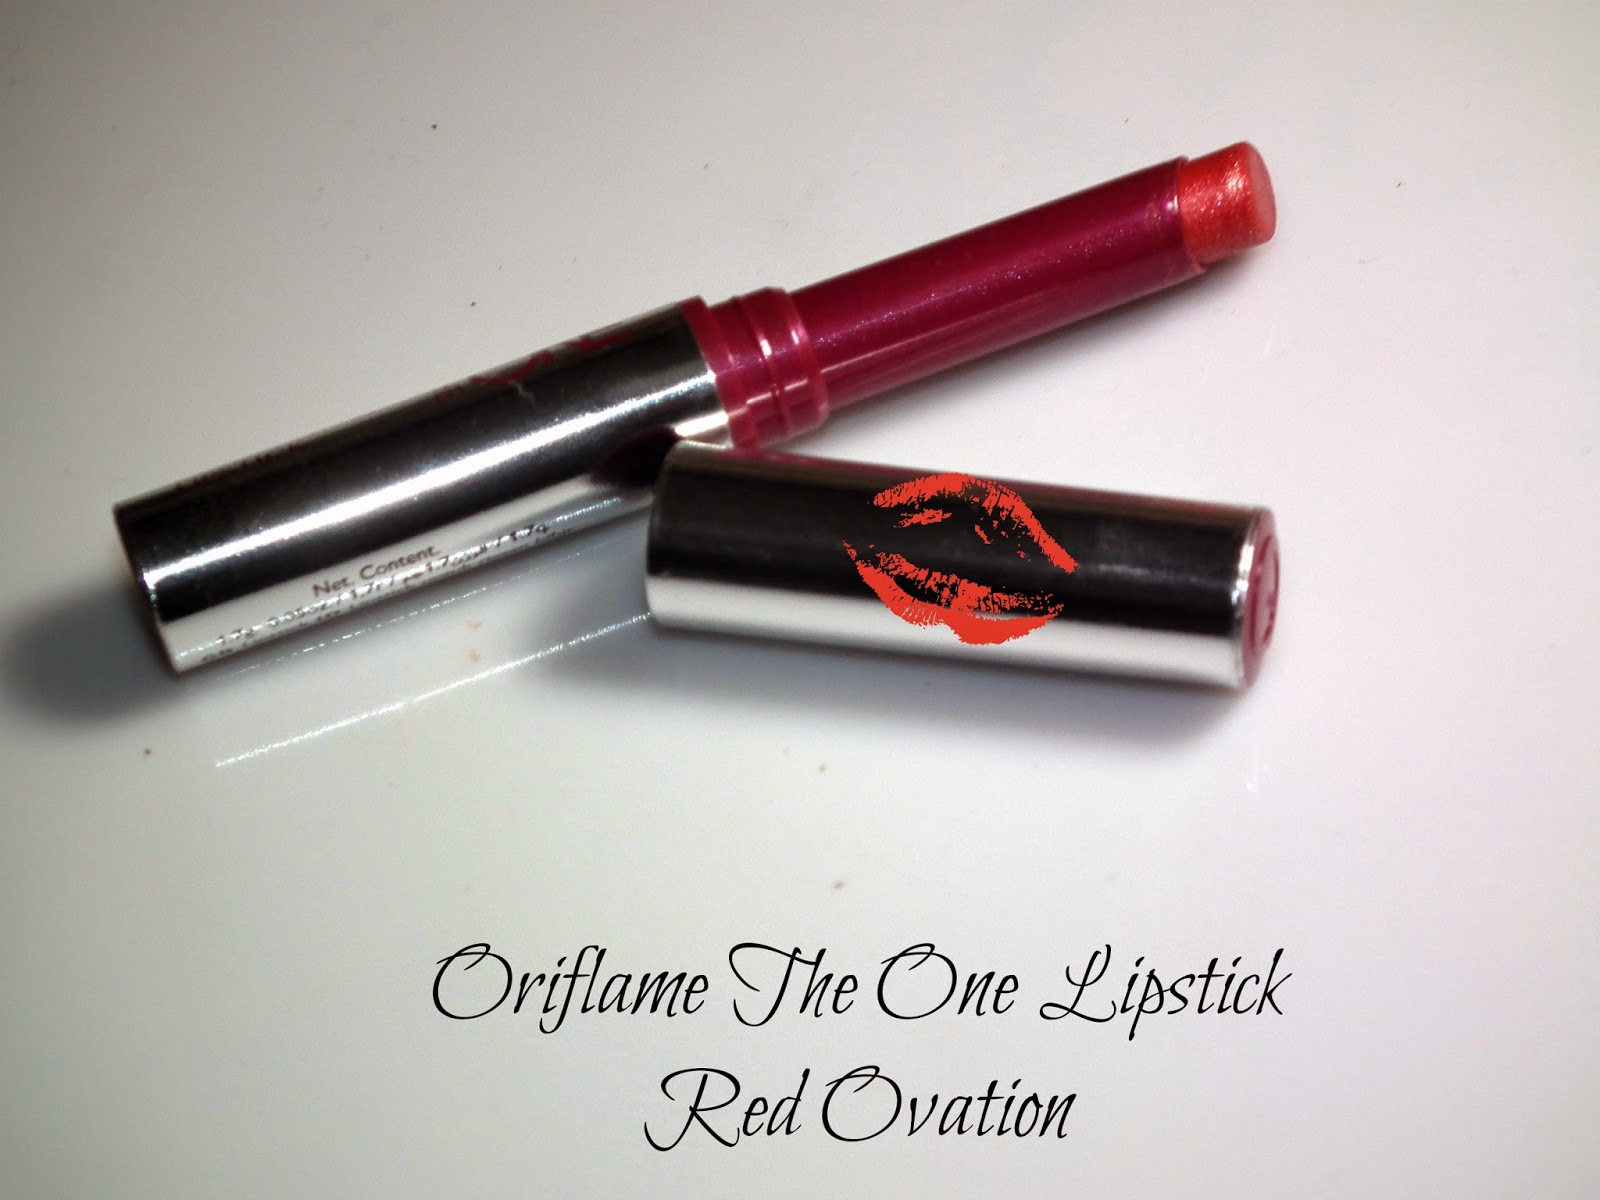 Oriflame The One Lipstick Red Ovation Swatches